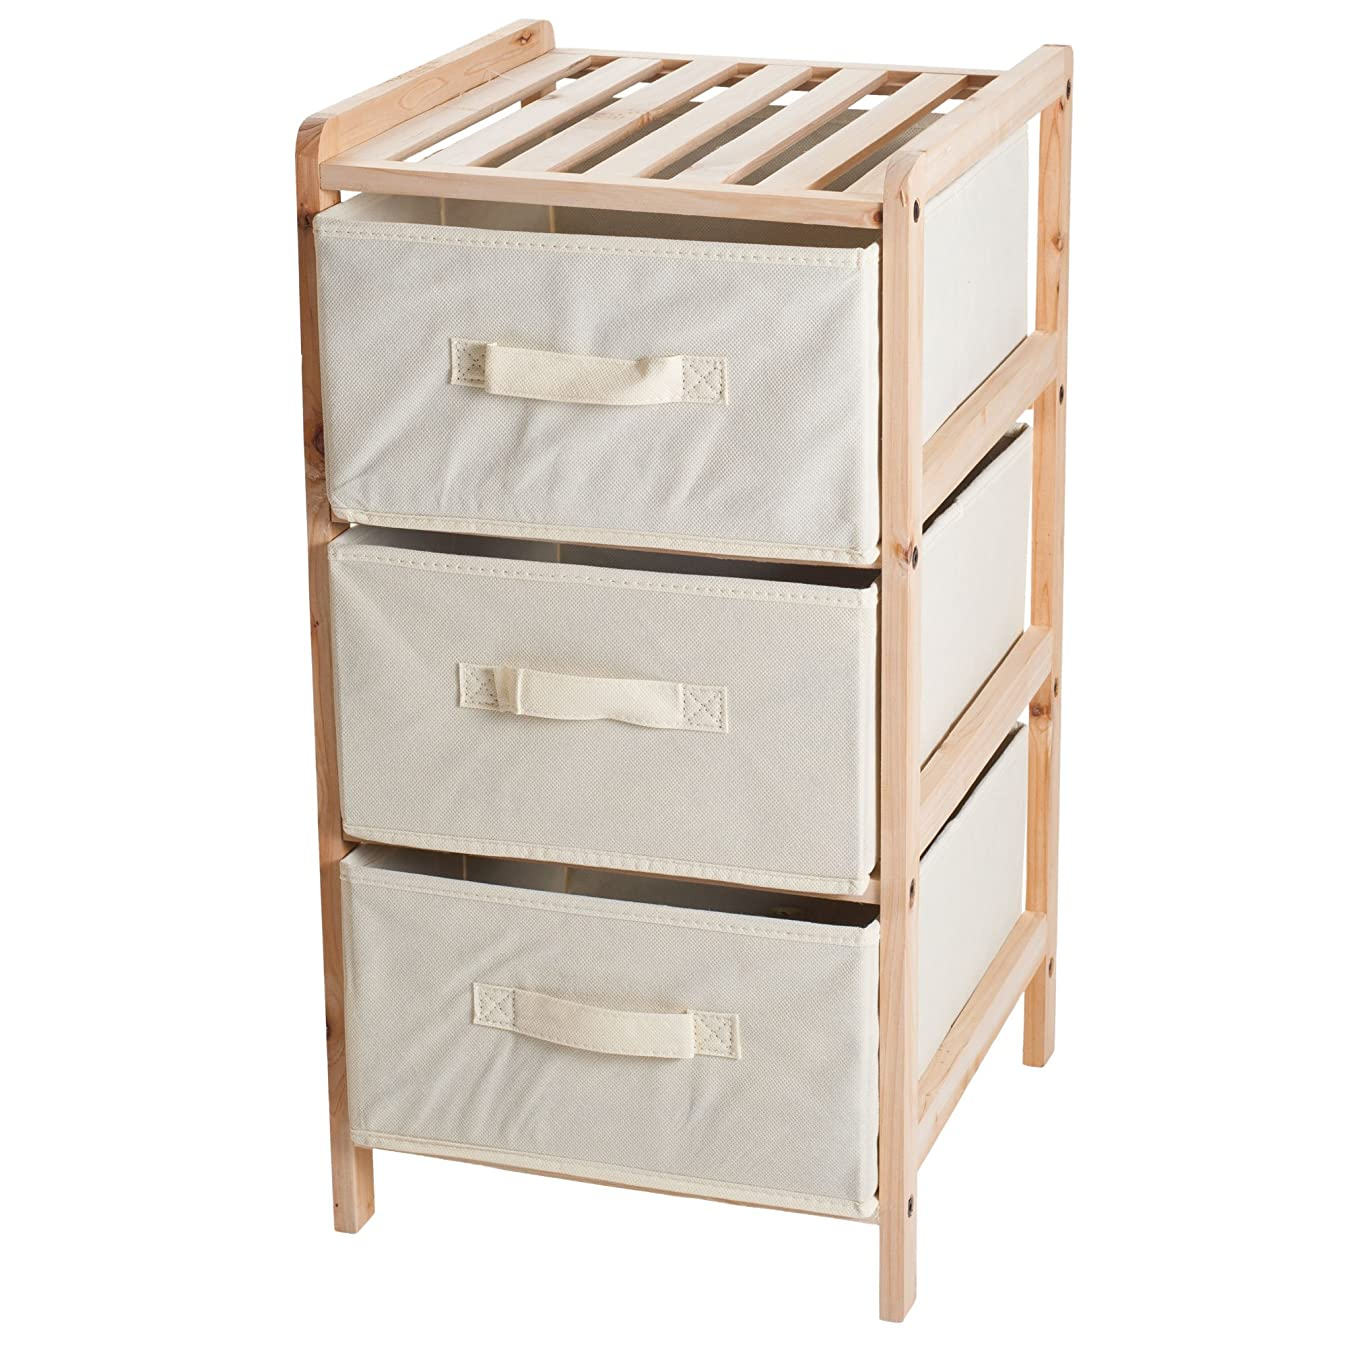 Lavish Home Organization Drawers with Natural Wood Shelf and Three Fabric Storage Bins- Lightweight and Perfect for Dorms, Bathrooms or Bedrooms